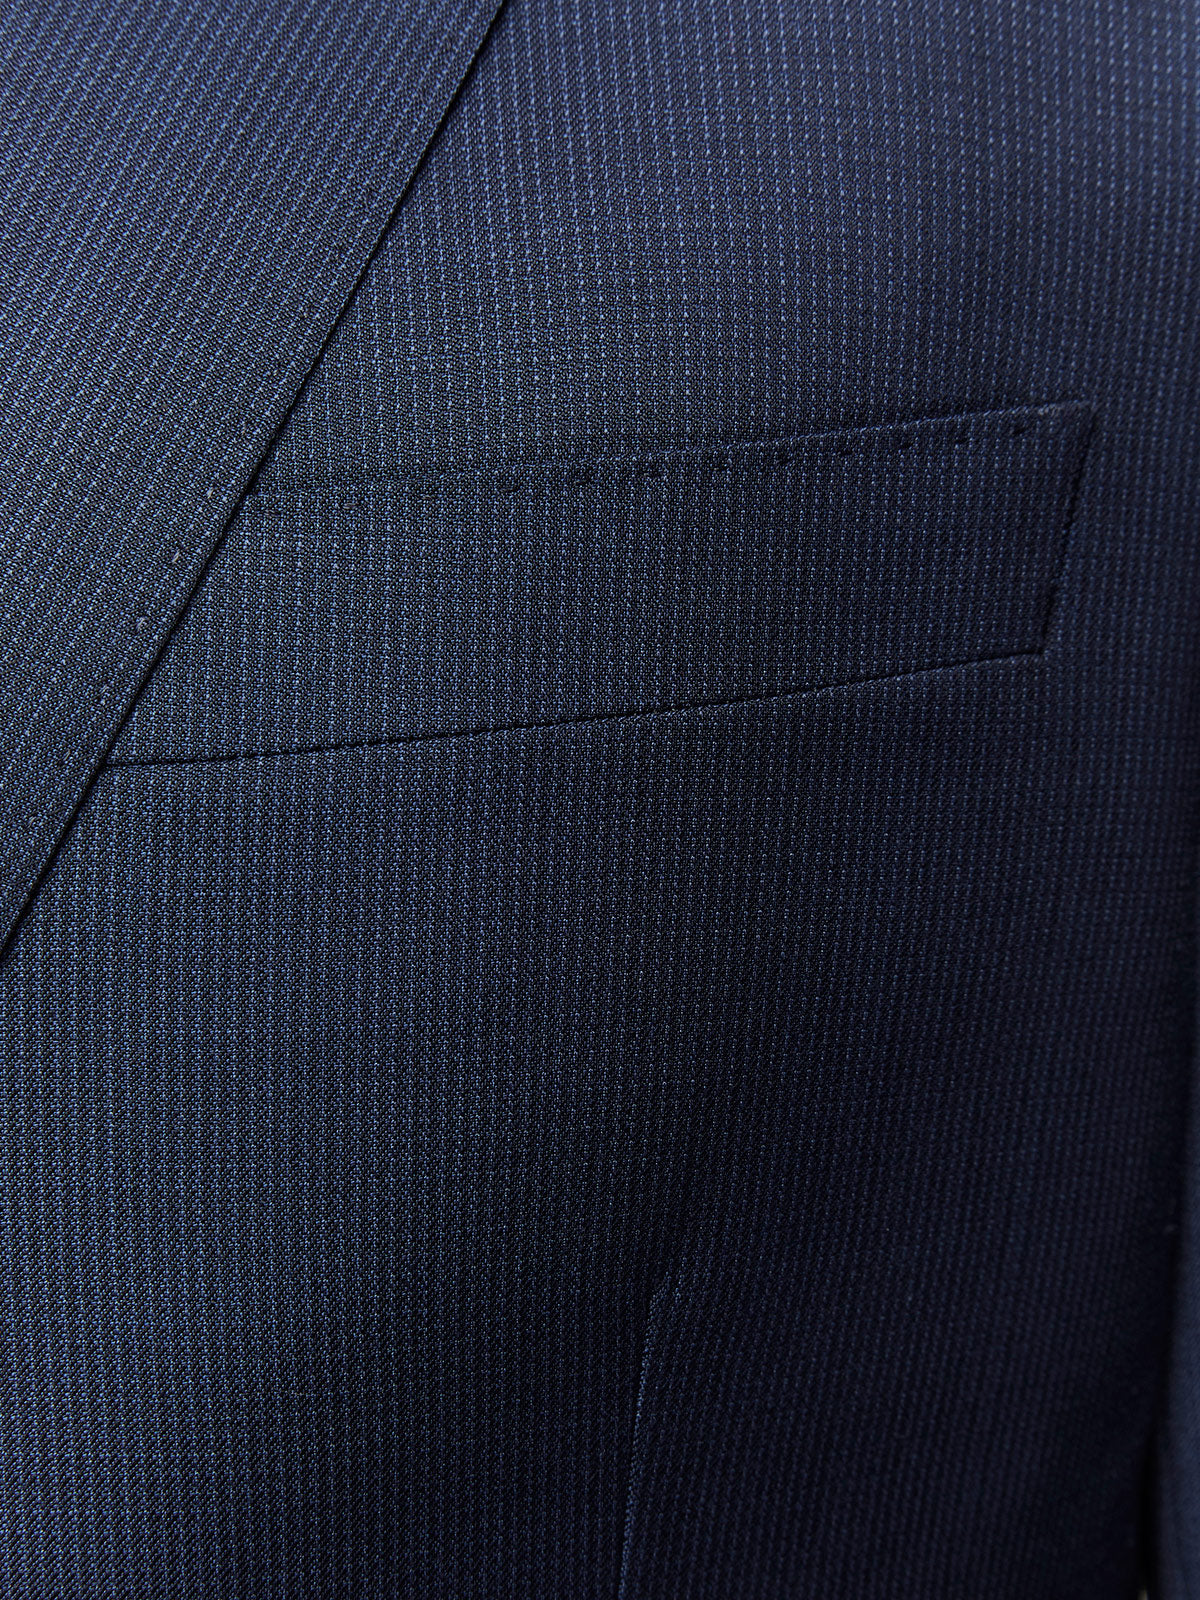 BYRON WOOL SUIT JACKET